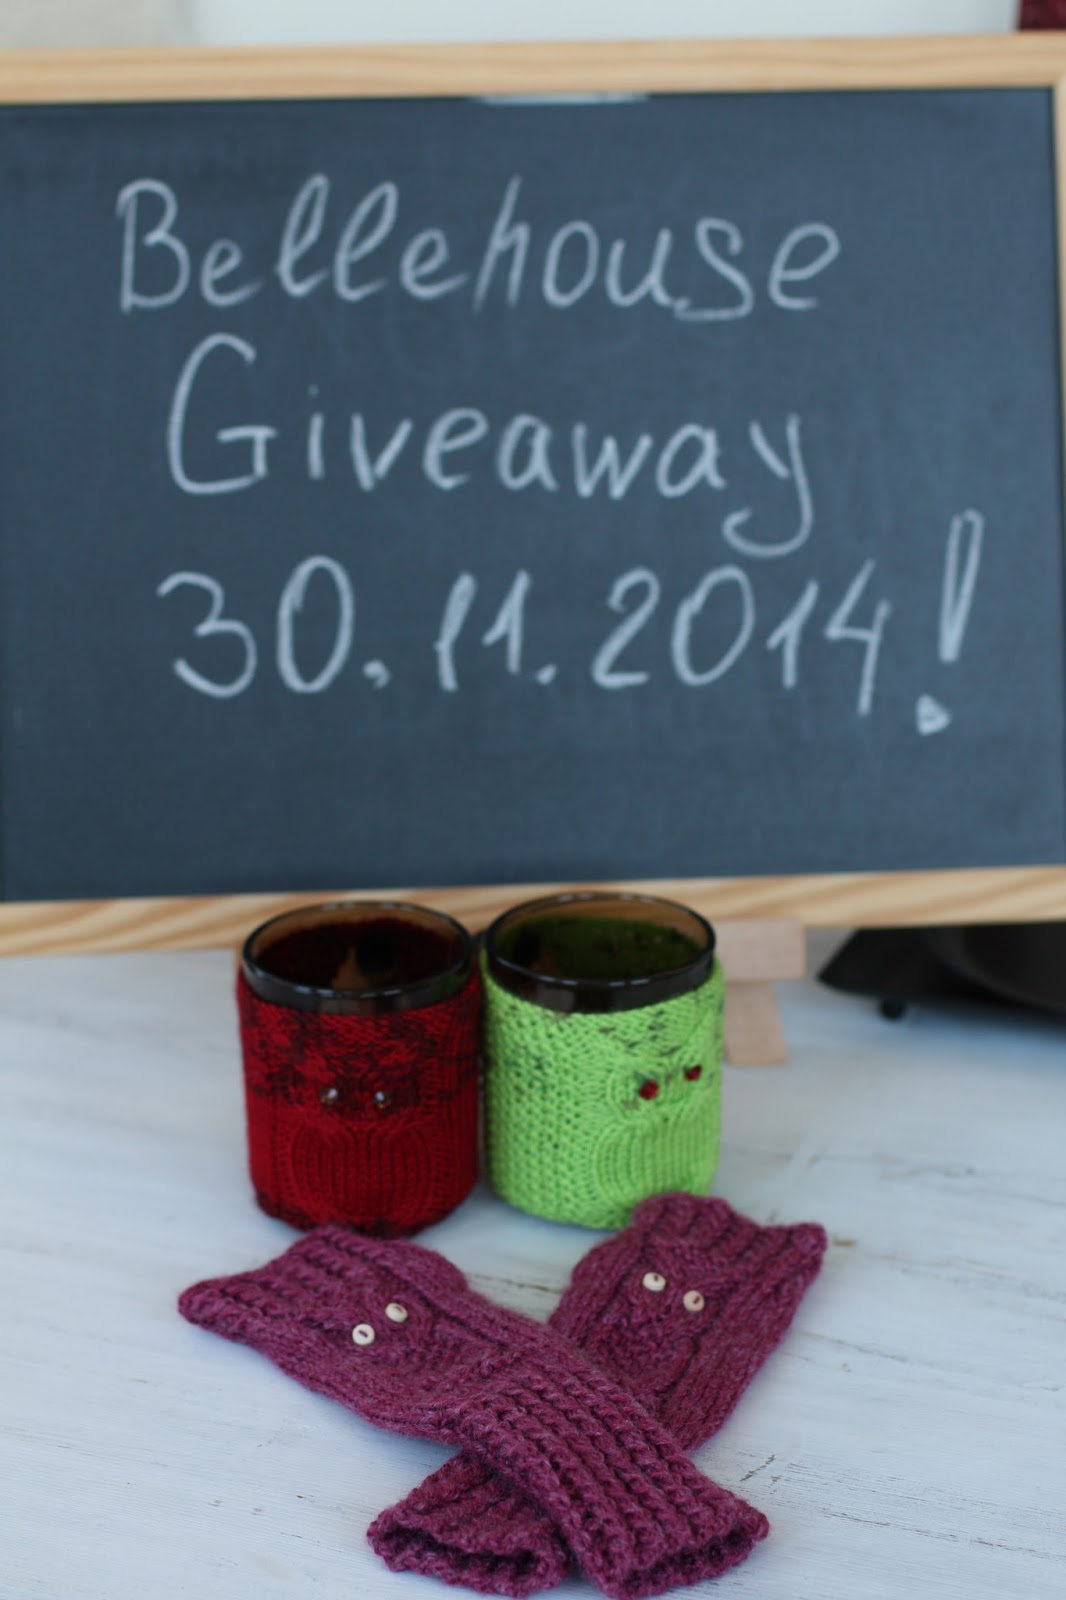 Bellehouse Giveaway